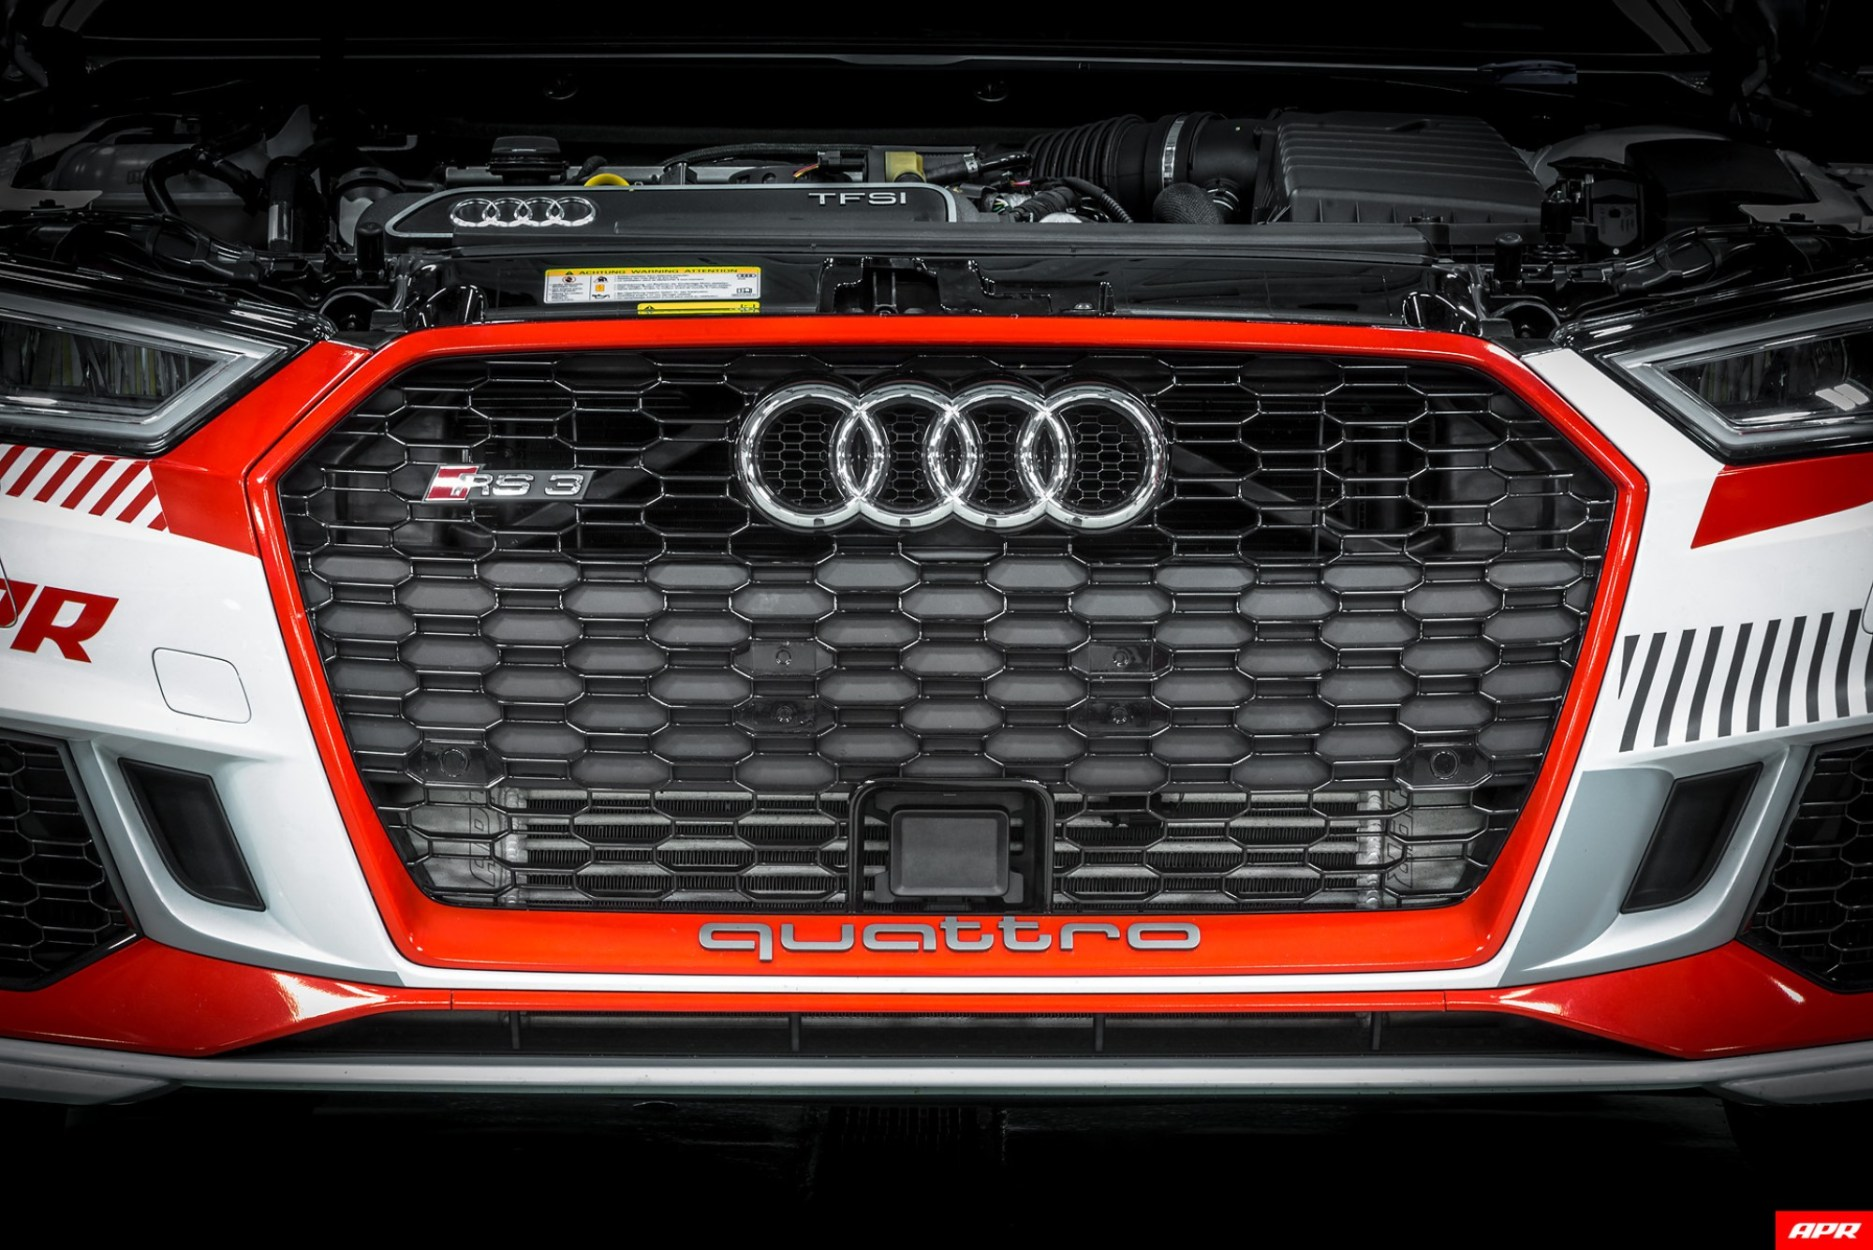 The APR RS 3 Front Mount Intercooler System (FMIC)